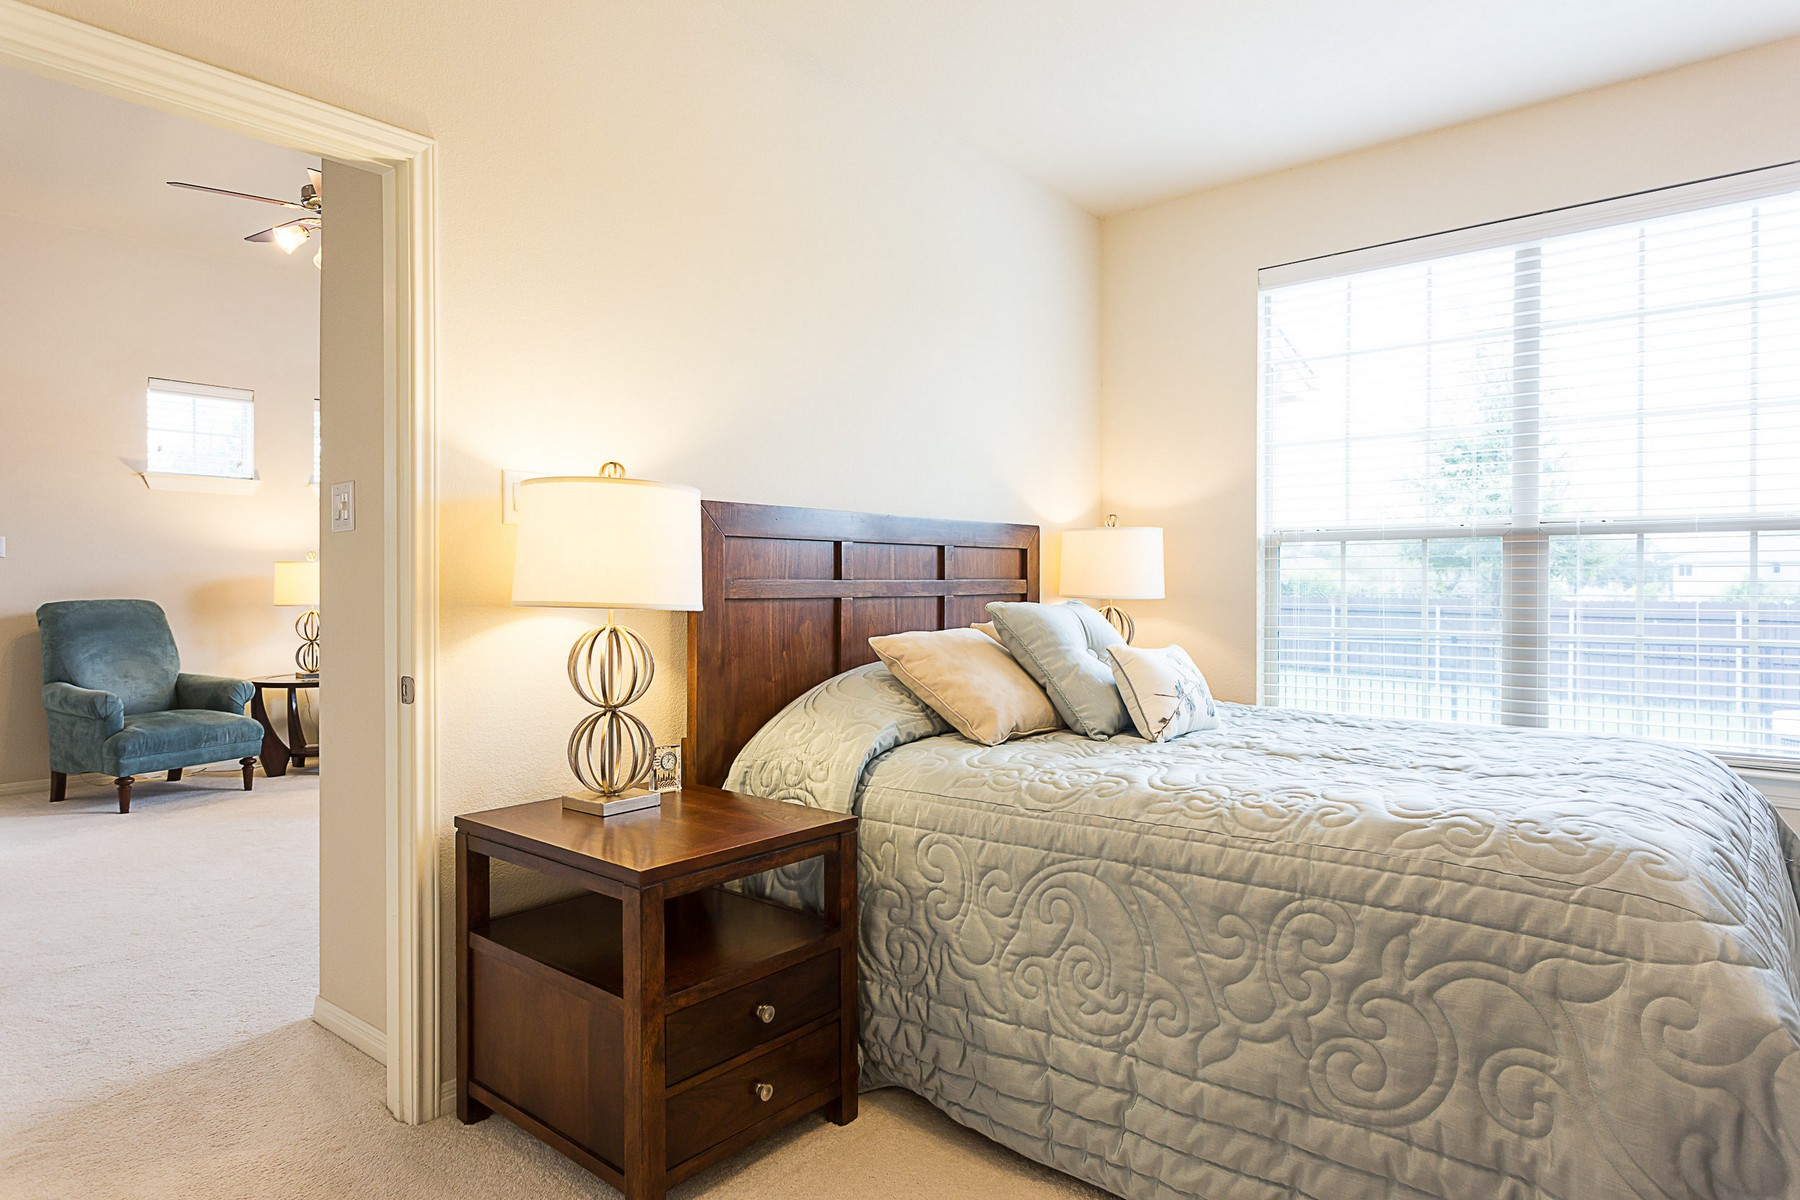 Additional photo for property listing at Immaculate Home in Brodie Heights 3101 Davis Ln 8103 Austin, Texas 78748 Estados Unidos